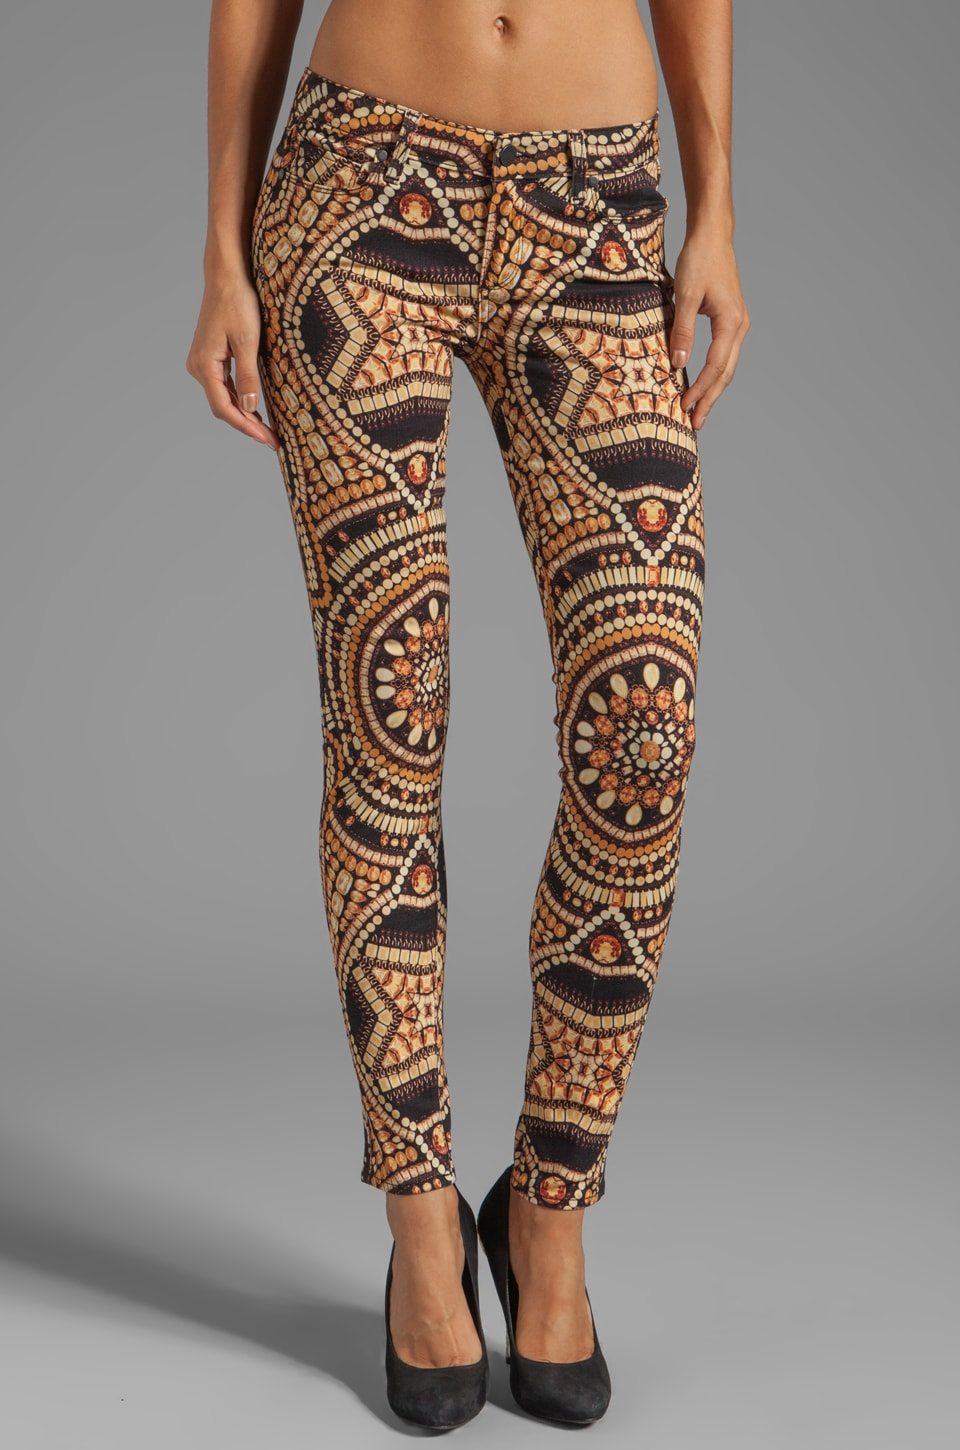 Paige Denim Verdugo Ultra Skinny in Amber Crown Jewels